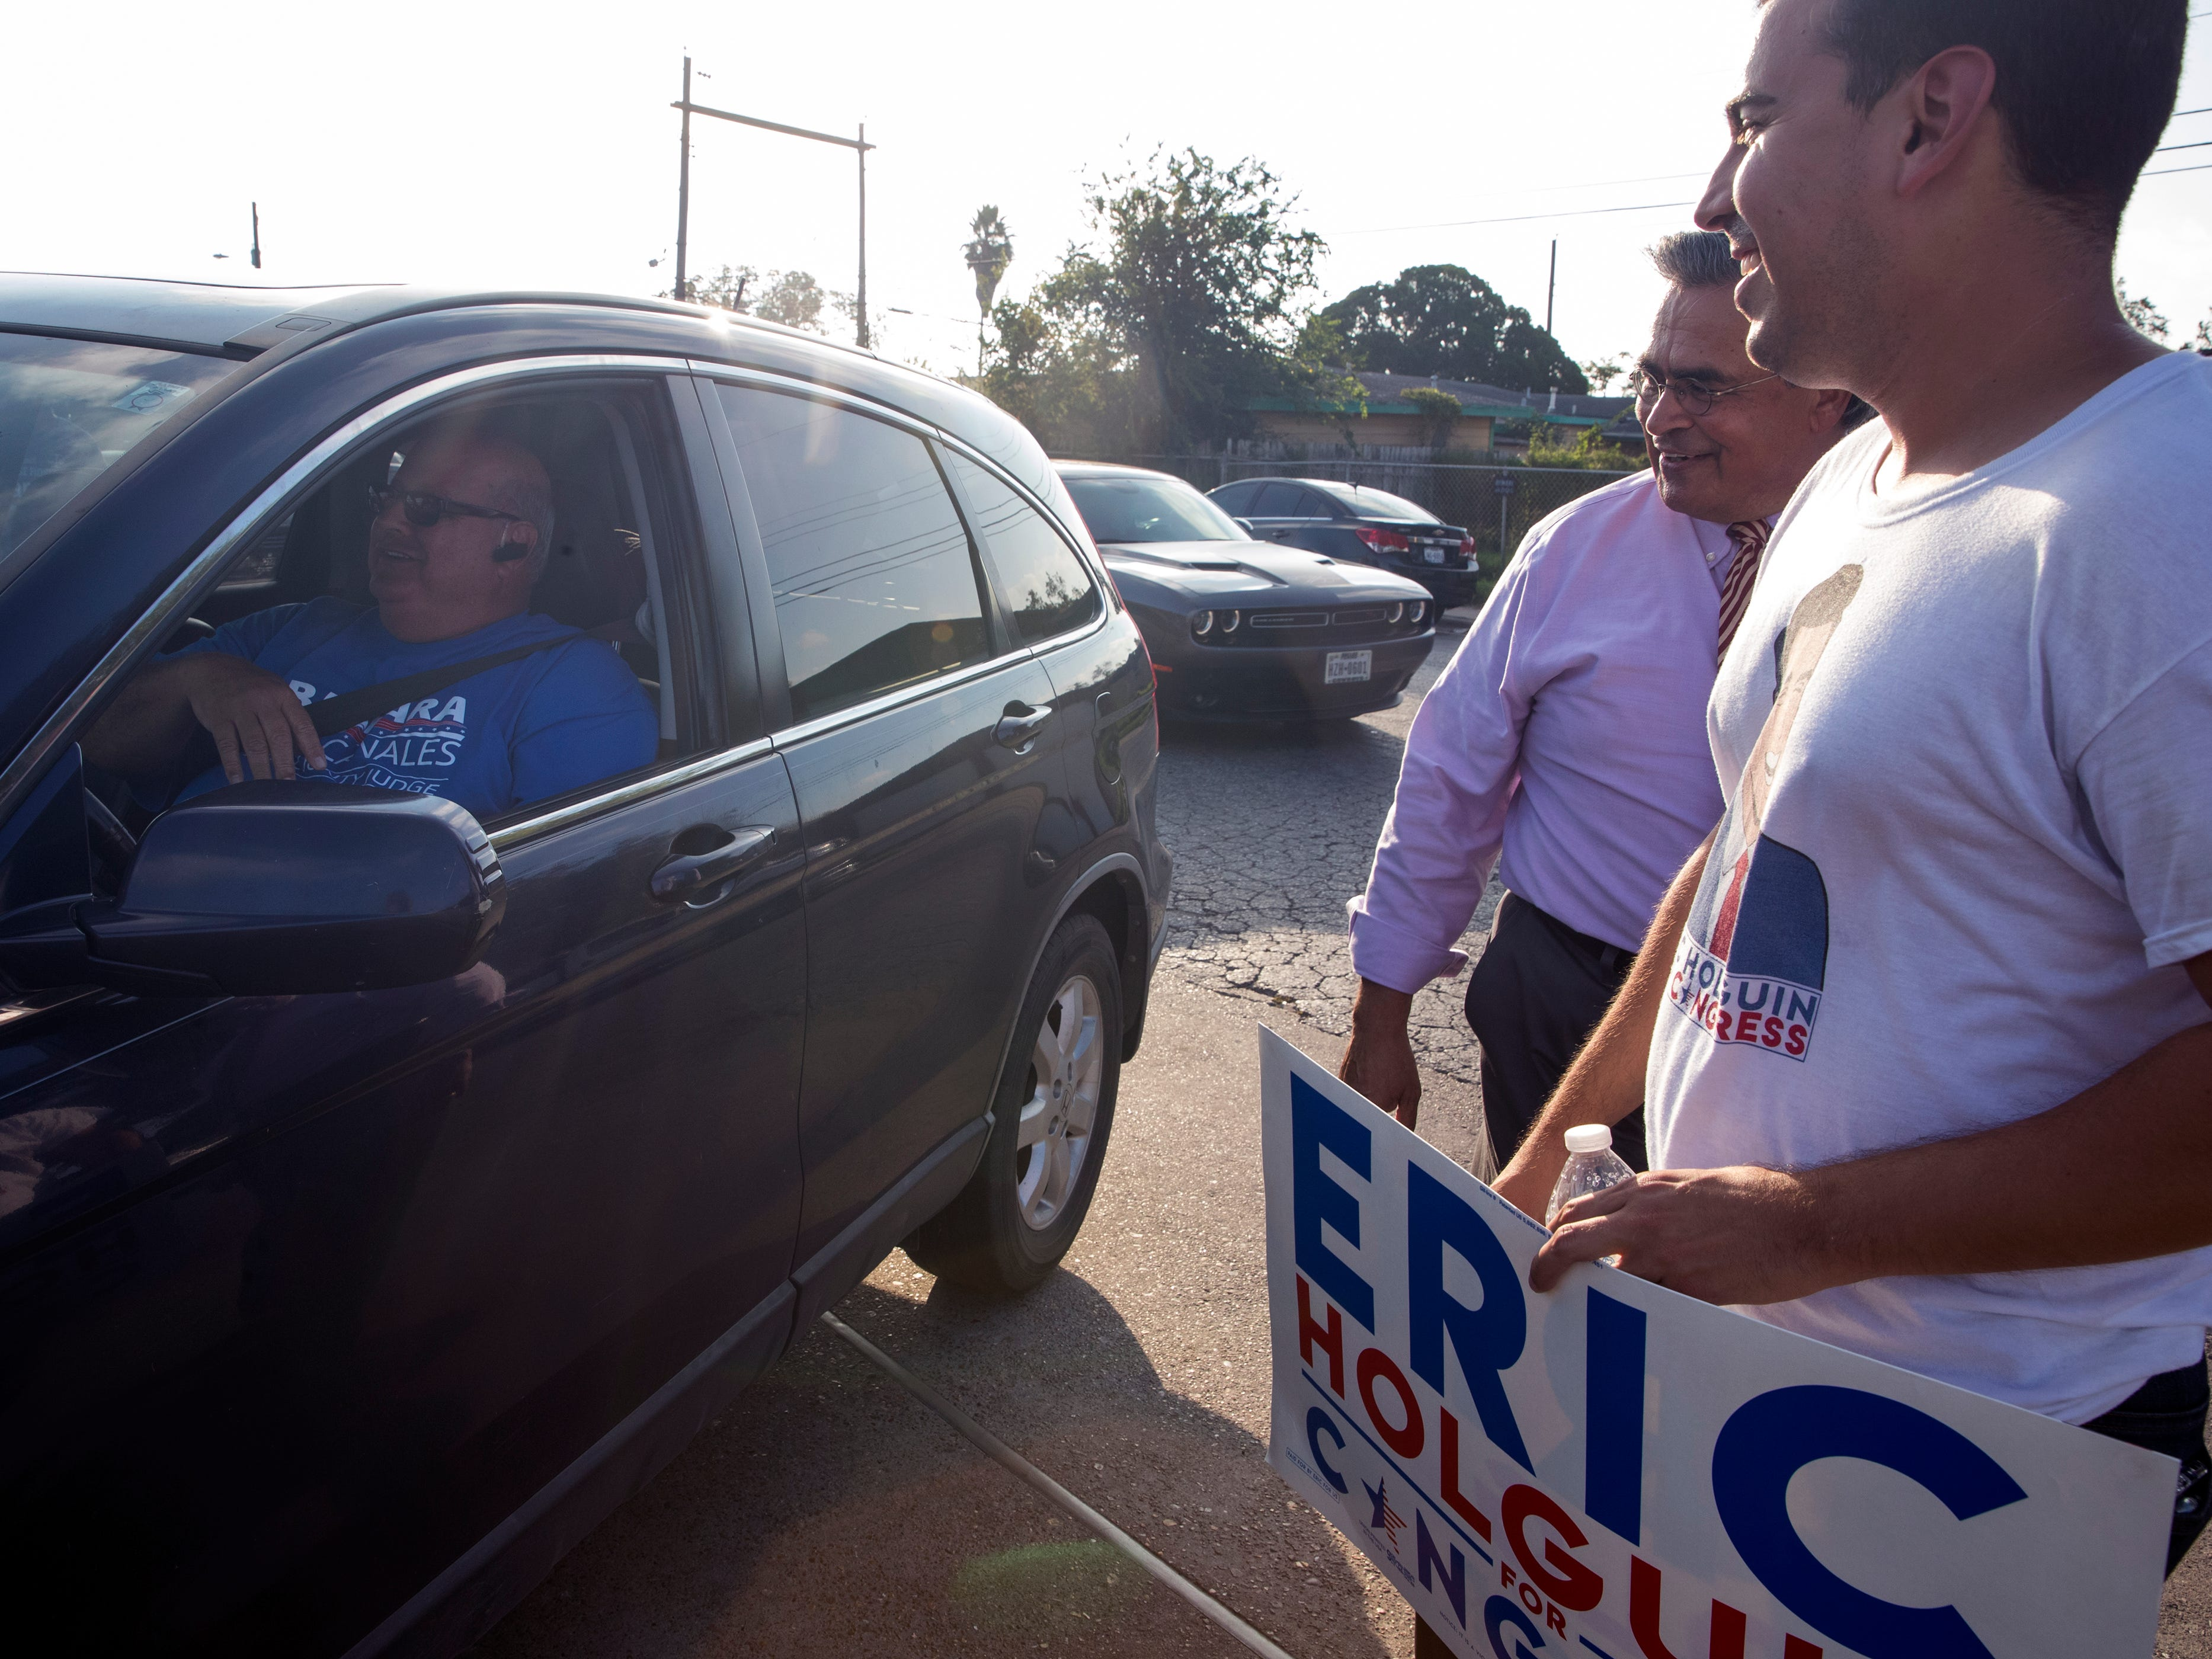 Leo Rio (from left) talks with Carlos Valdez, candidate for 148th District Court Judge, and Eric Holguin, Democratic candidate for Texas' 27th Congressional District, as they campaign outside Moody High School on Tuesday, November 6, 2018.